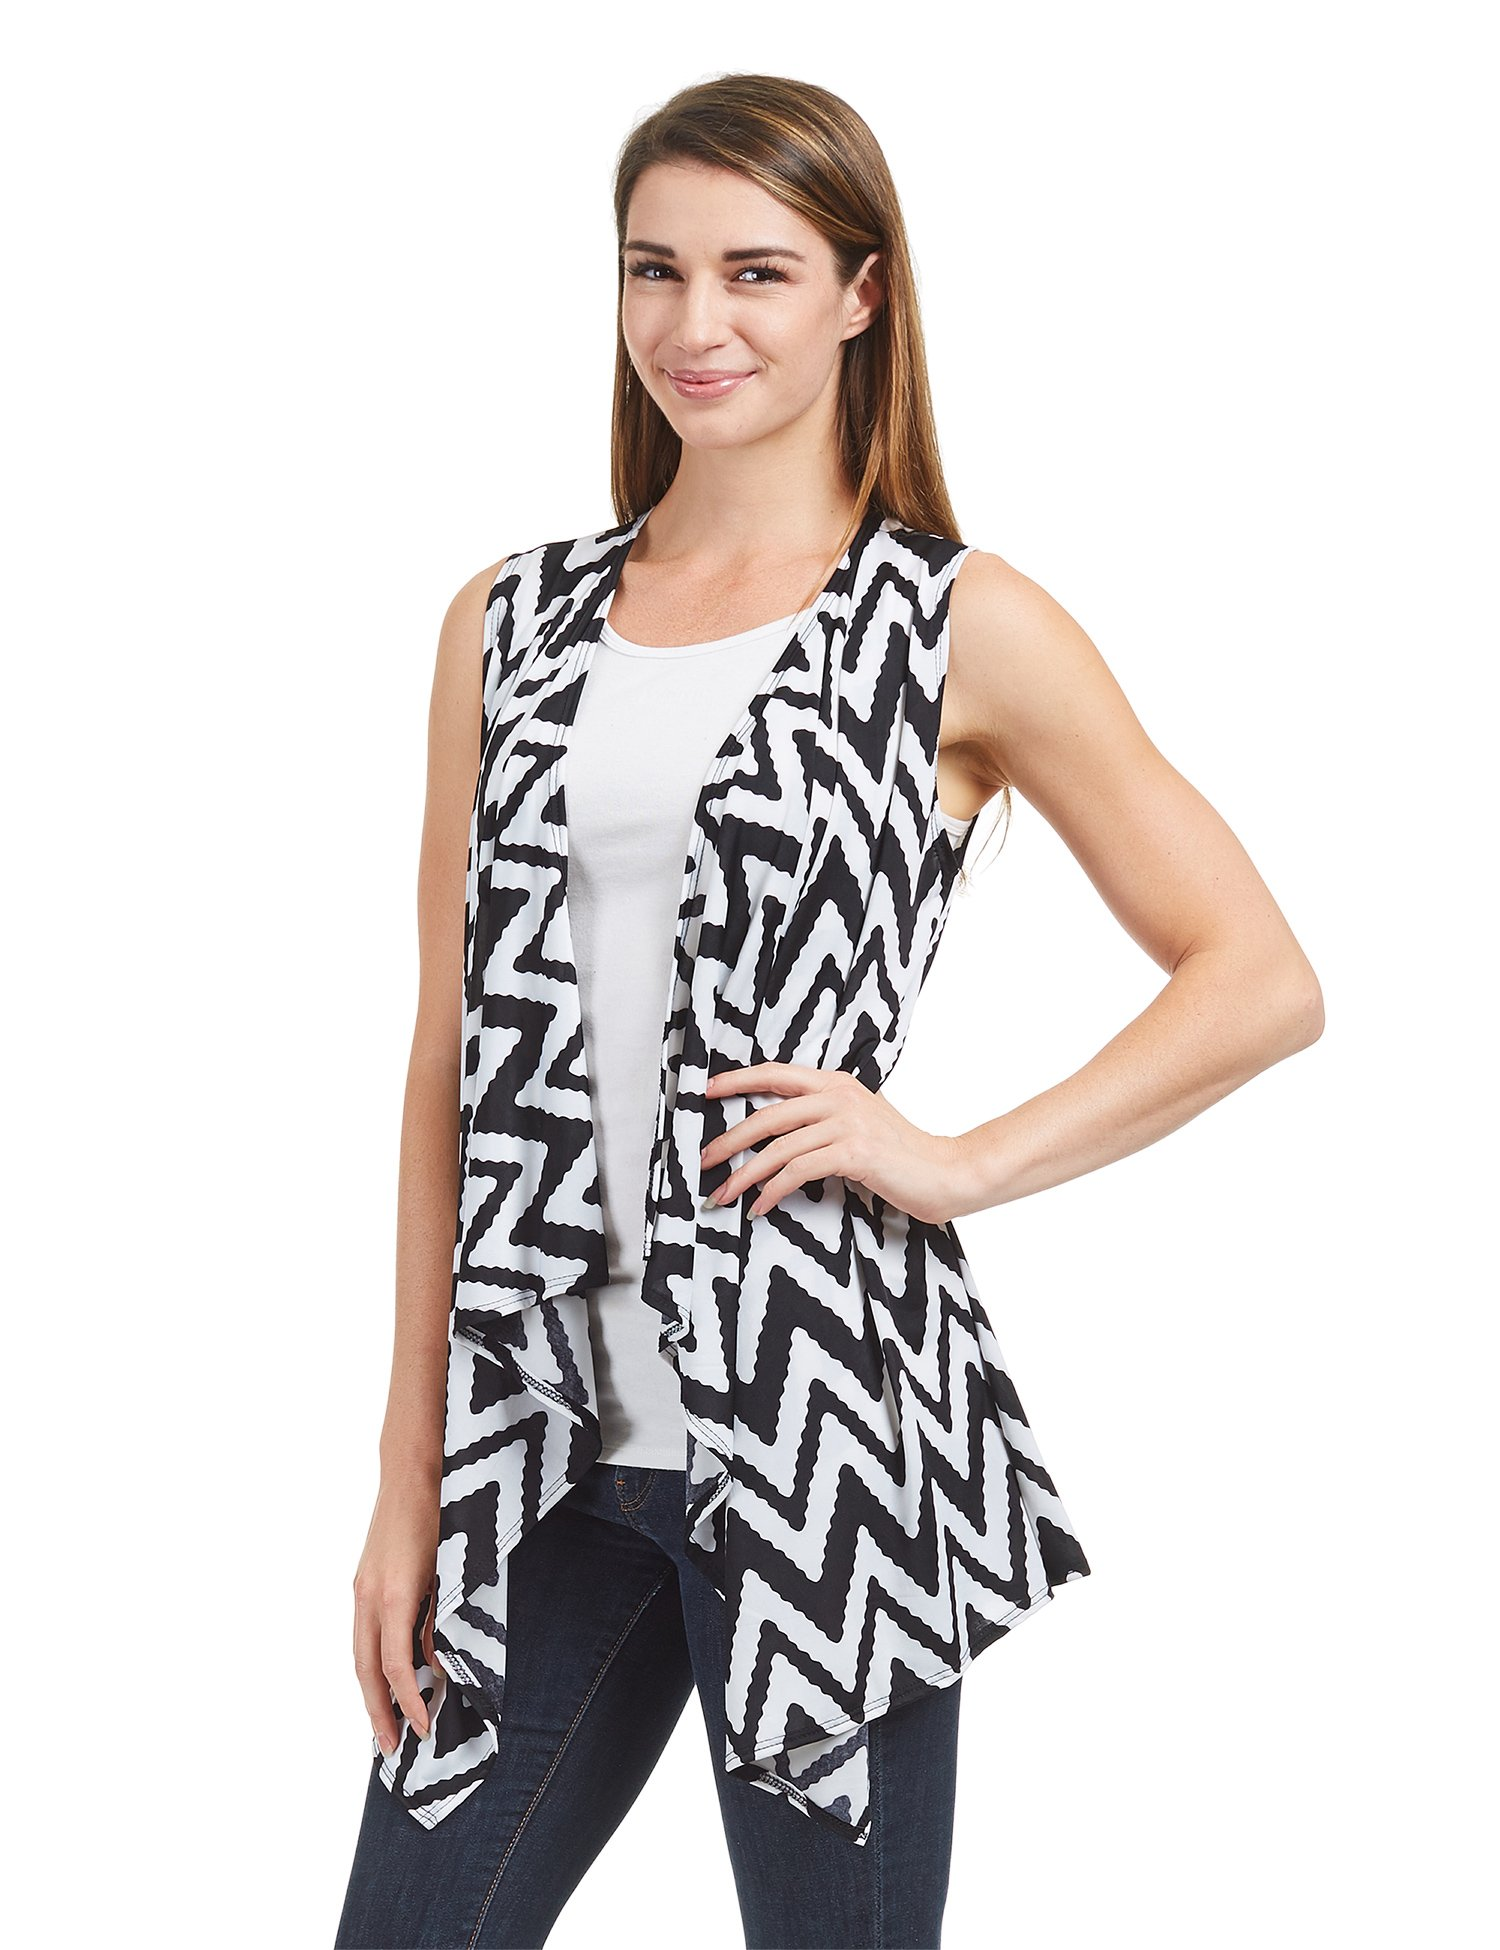 Lock and Love WSK1350 Womens Lightweight Print Draped Sleeveless Cardigan XXXL CHEV_Black by Lock and Love (Image #1)